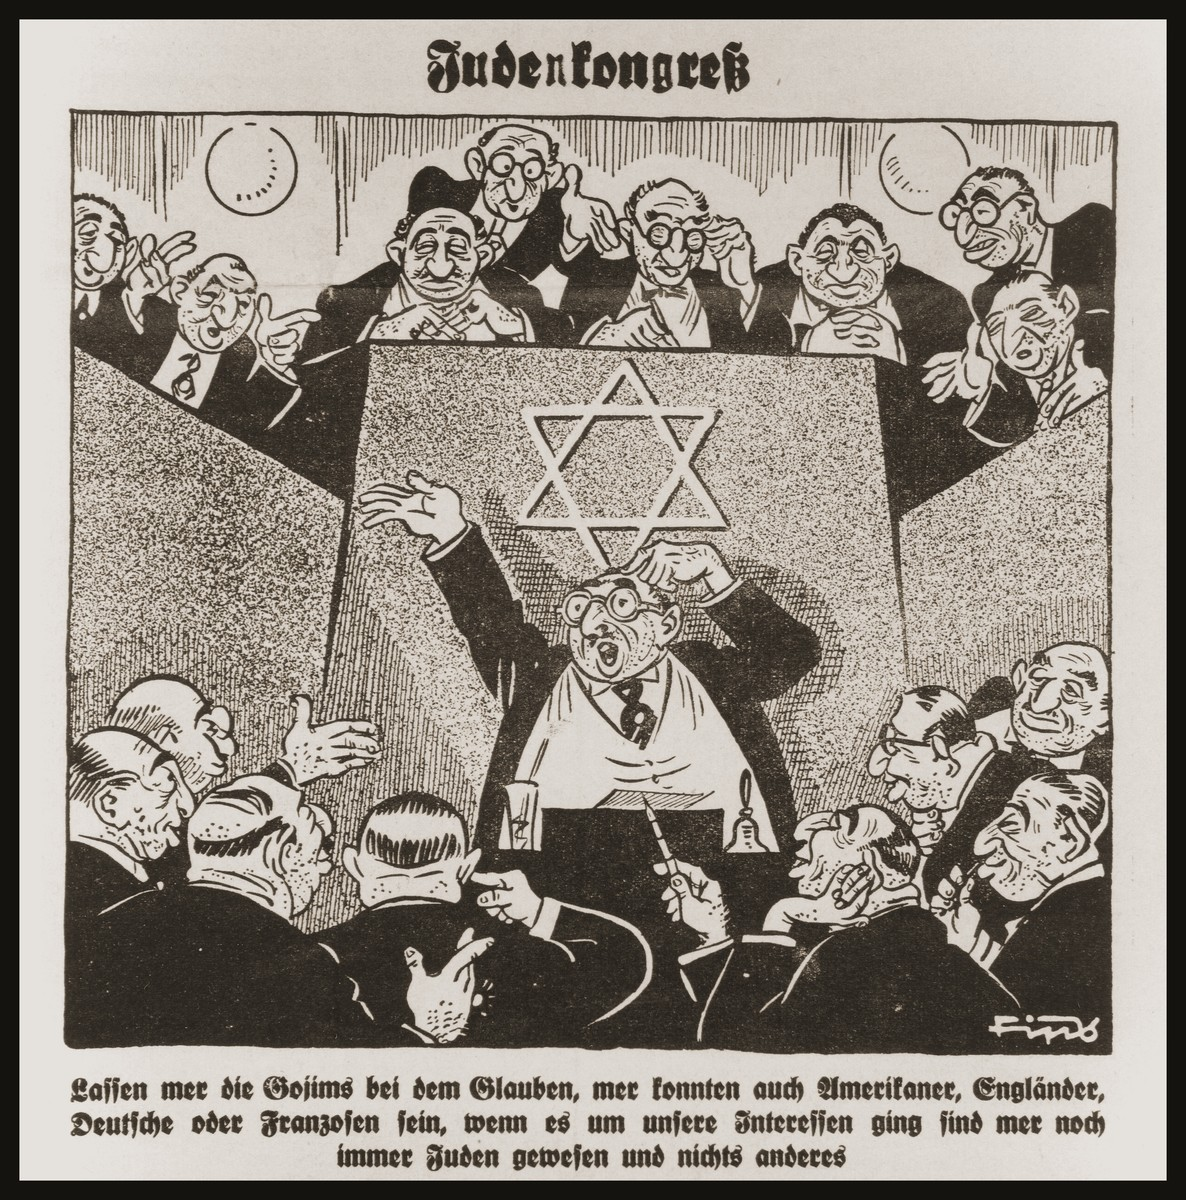 "Caricature on the front page of the Nazi publication, Der Stuermer, depicting the Jew as one who pretends to be the same as his countrymen, but who knows he is Jewish and nothing else.  The German caption under the caricature reads, ""Let us let the Goyim believe that we can be Americans, Englishman, Germans or Frenchmen, when it is in our interests we have always been Jewish and nothing else."""